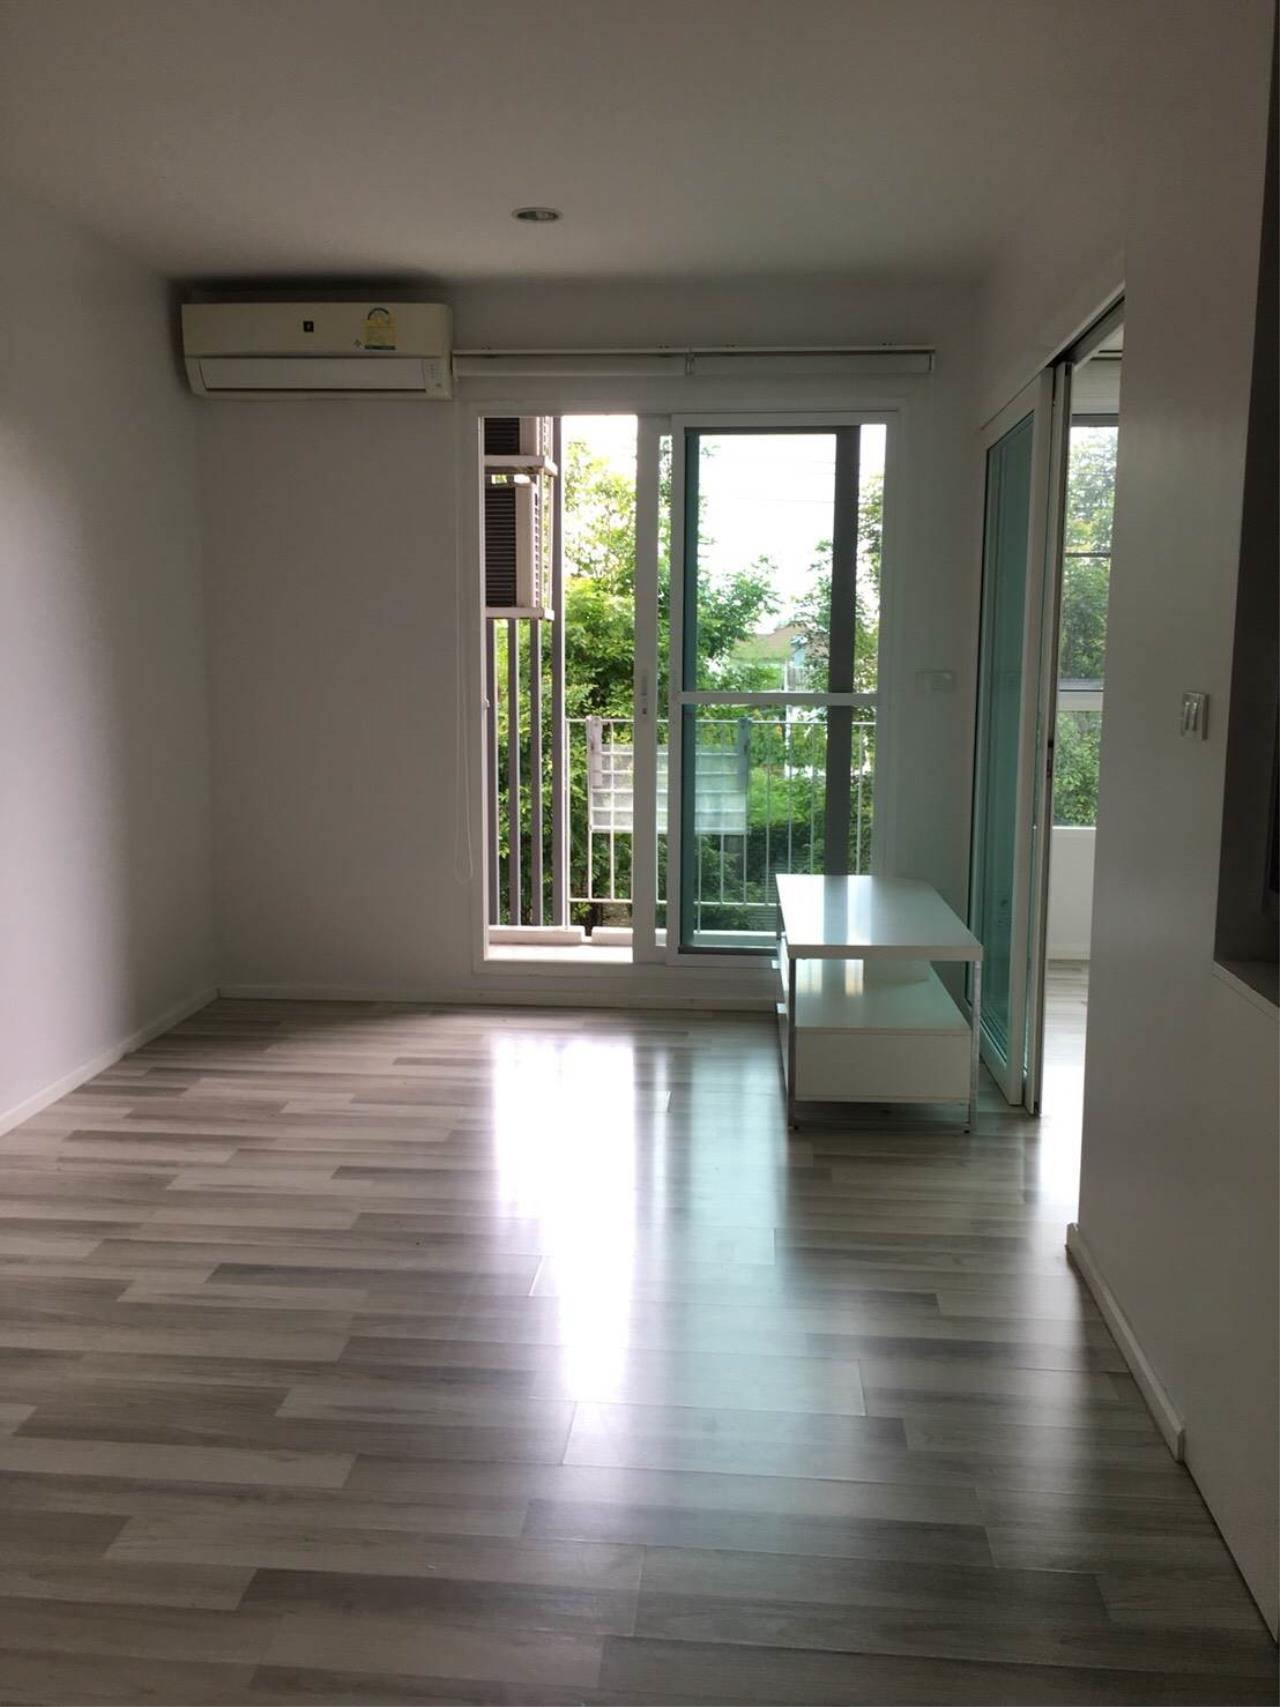 Uptown Assets  Agency's FOR Sell & Rent The Key Phaholyothin 34 Unit 98/26 Building A   3nd Floor  1